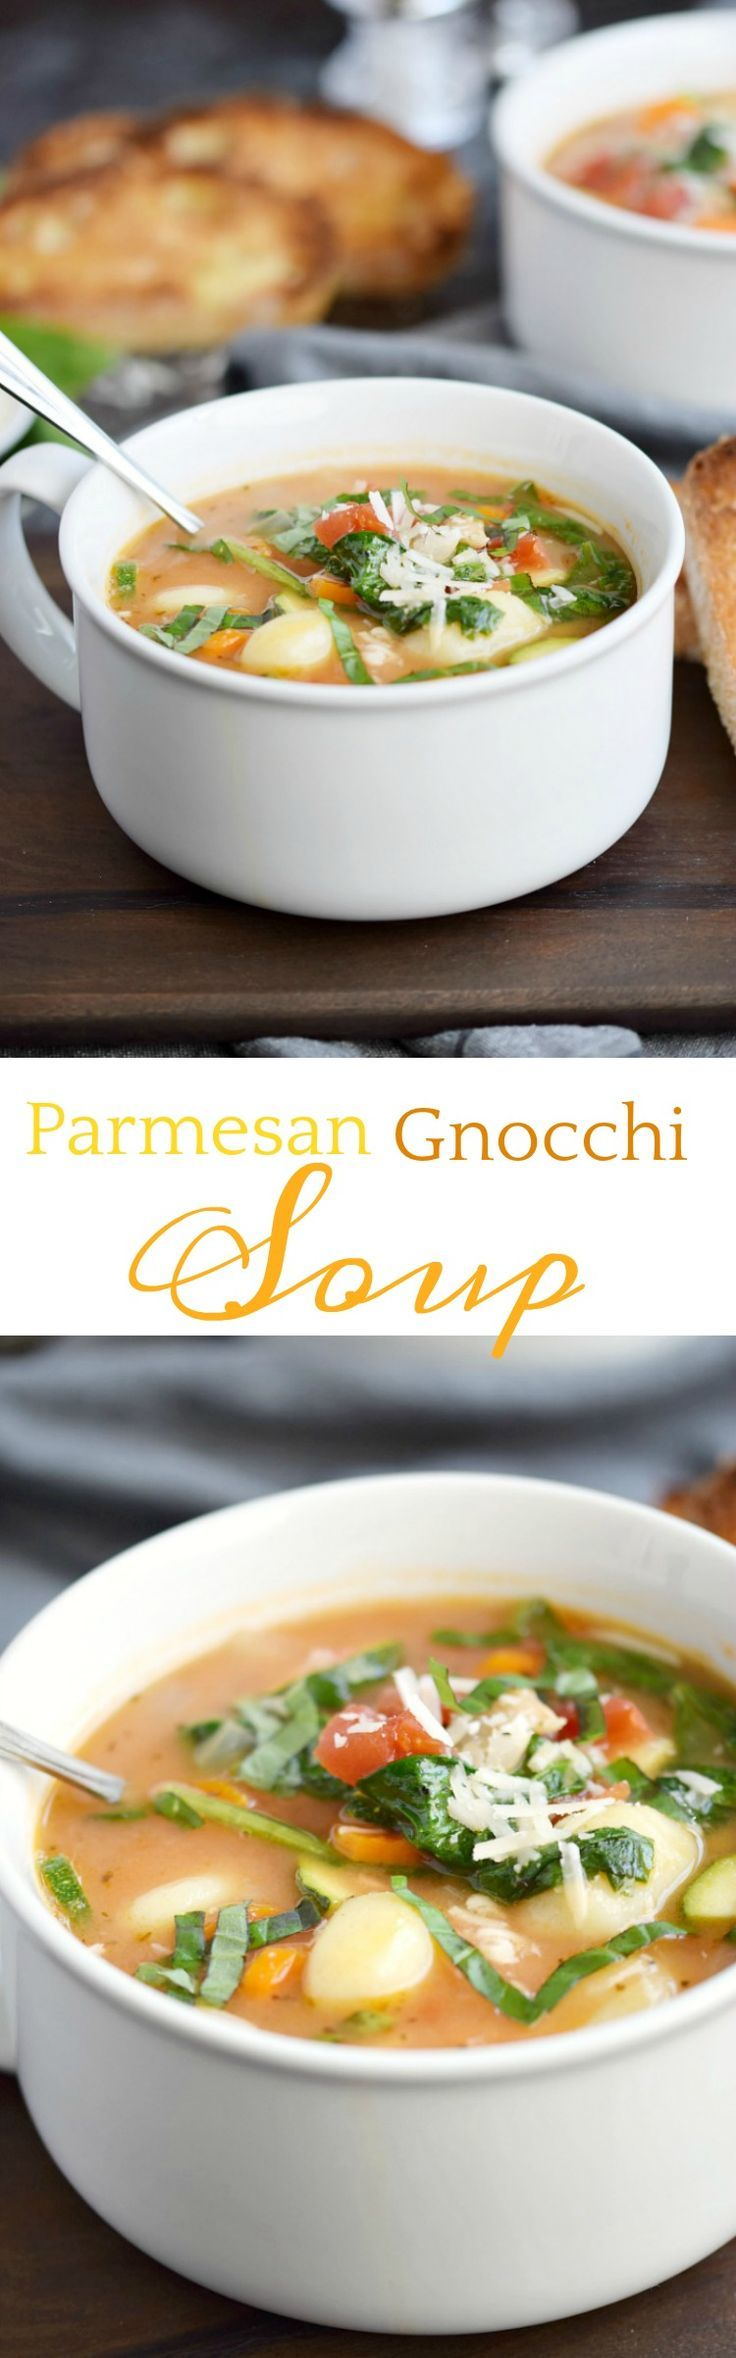 Parmesan Gnocchi Soup flavored with the rind from Parmesan cheese and loaded with vegetables for a healthy and delicious meal the whole family will love! COPYRIGHT ©️️ 2017 COOKING WITH CURLS